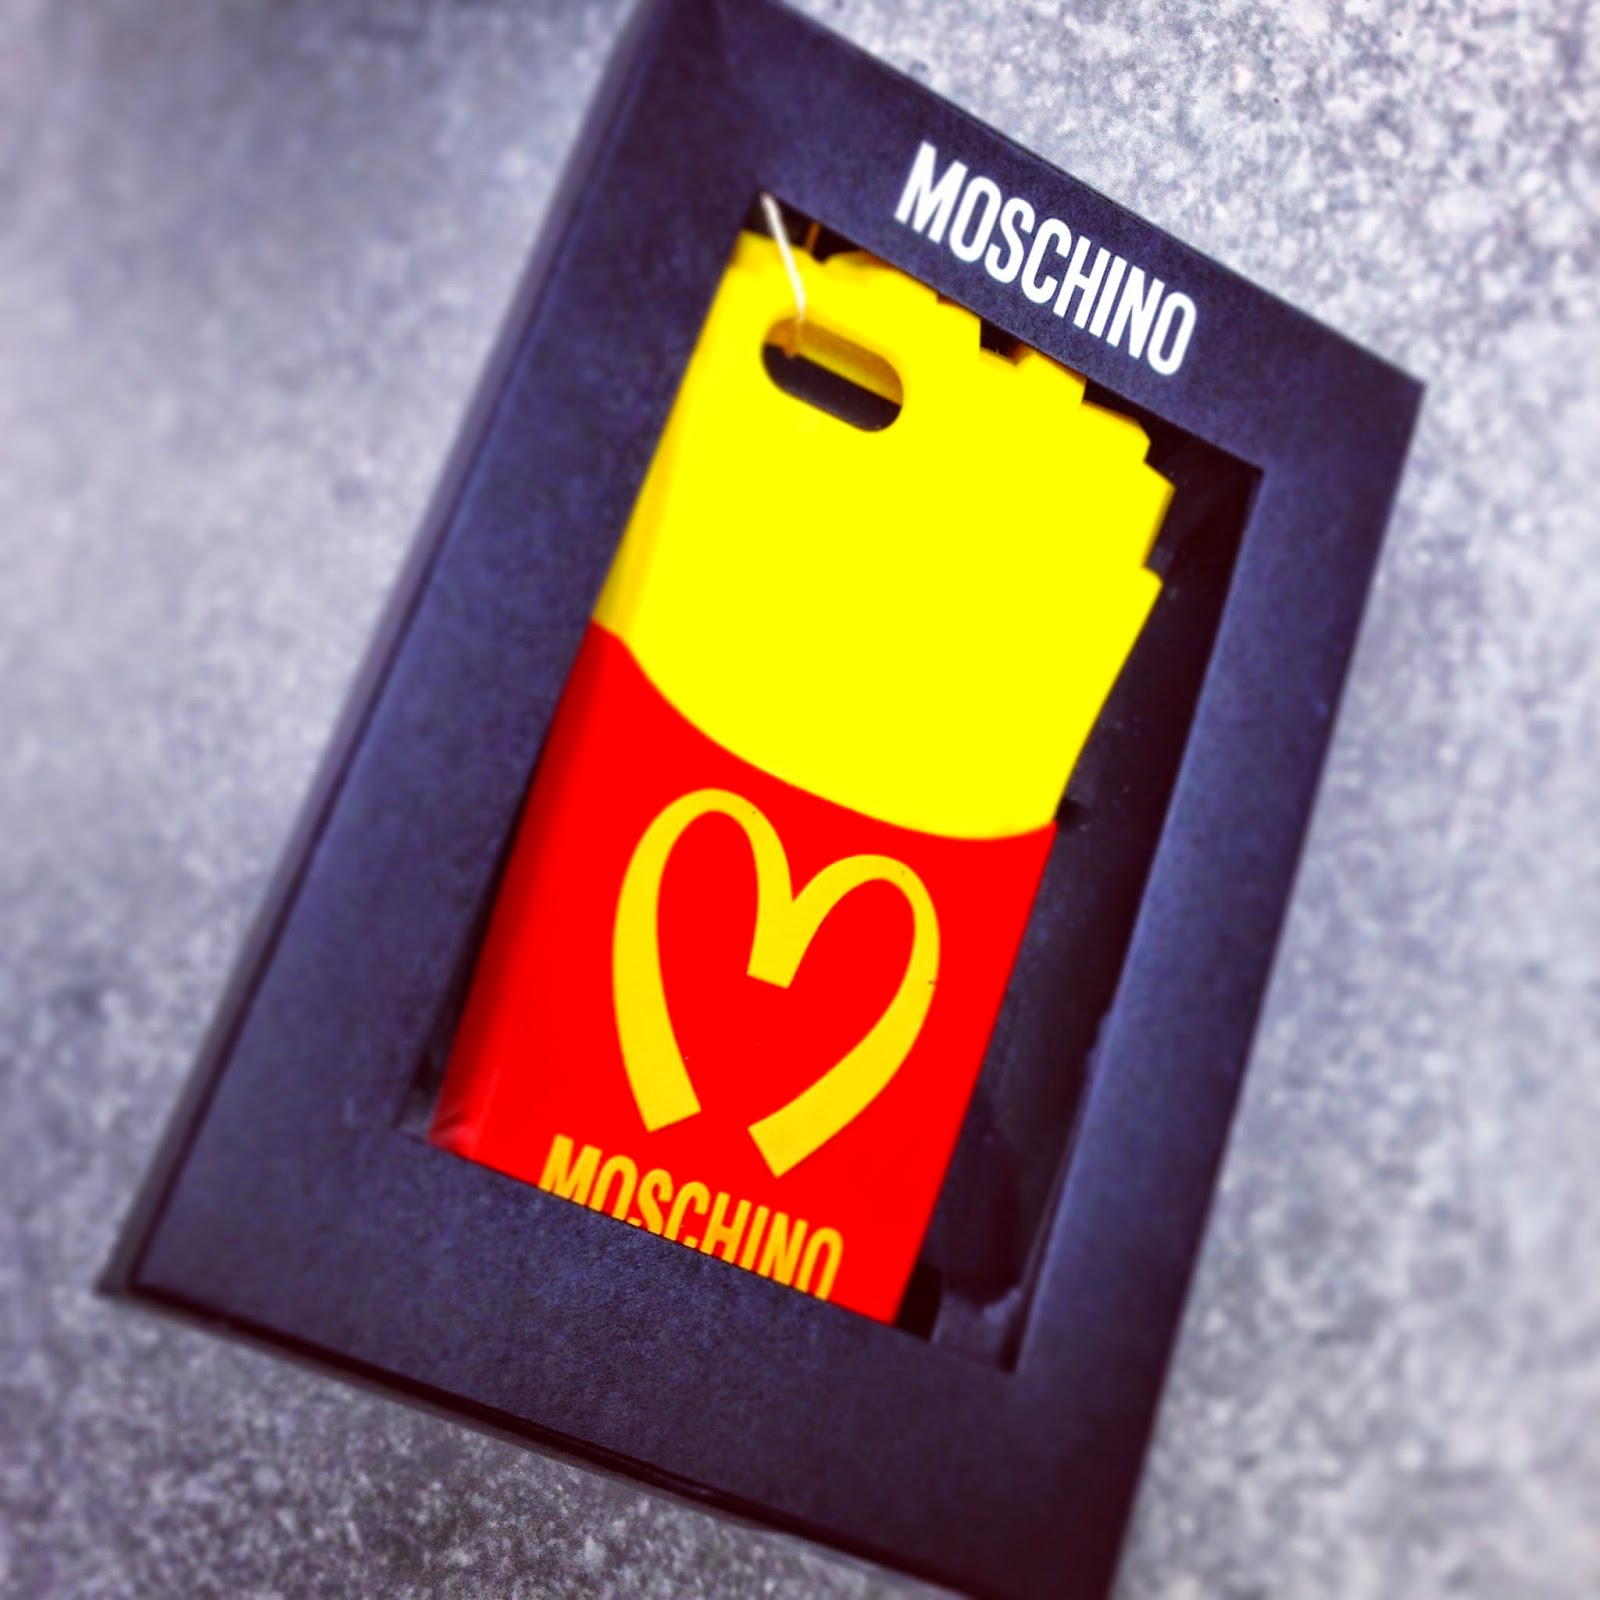 Moschino, fries, iphone